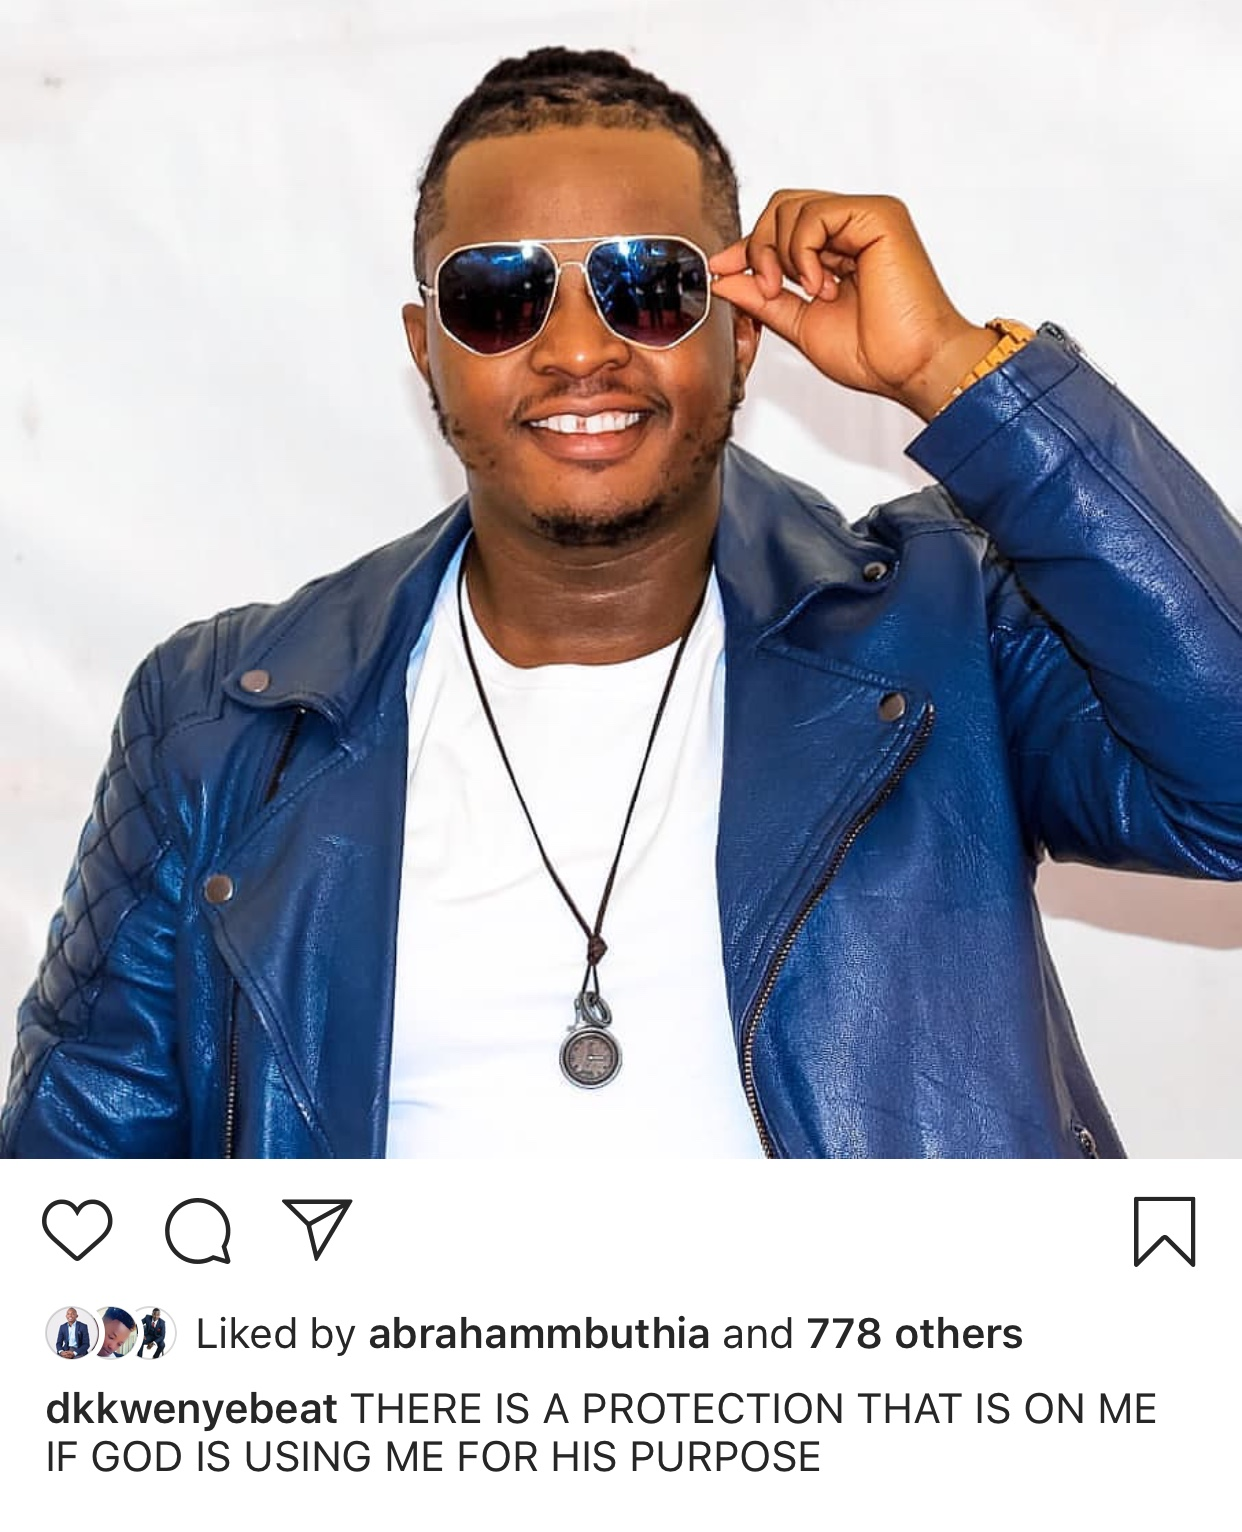 DK Kwenye Beat now distances himself with claims he has  infected  20 year old video vixen with Herpes